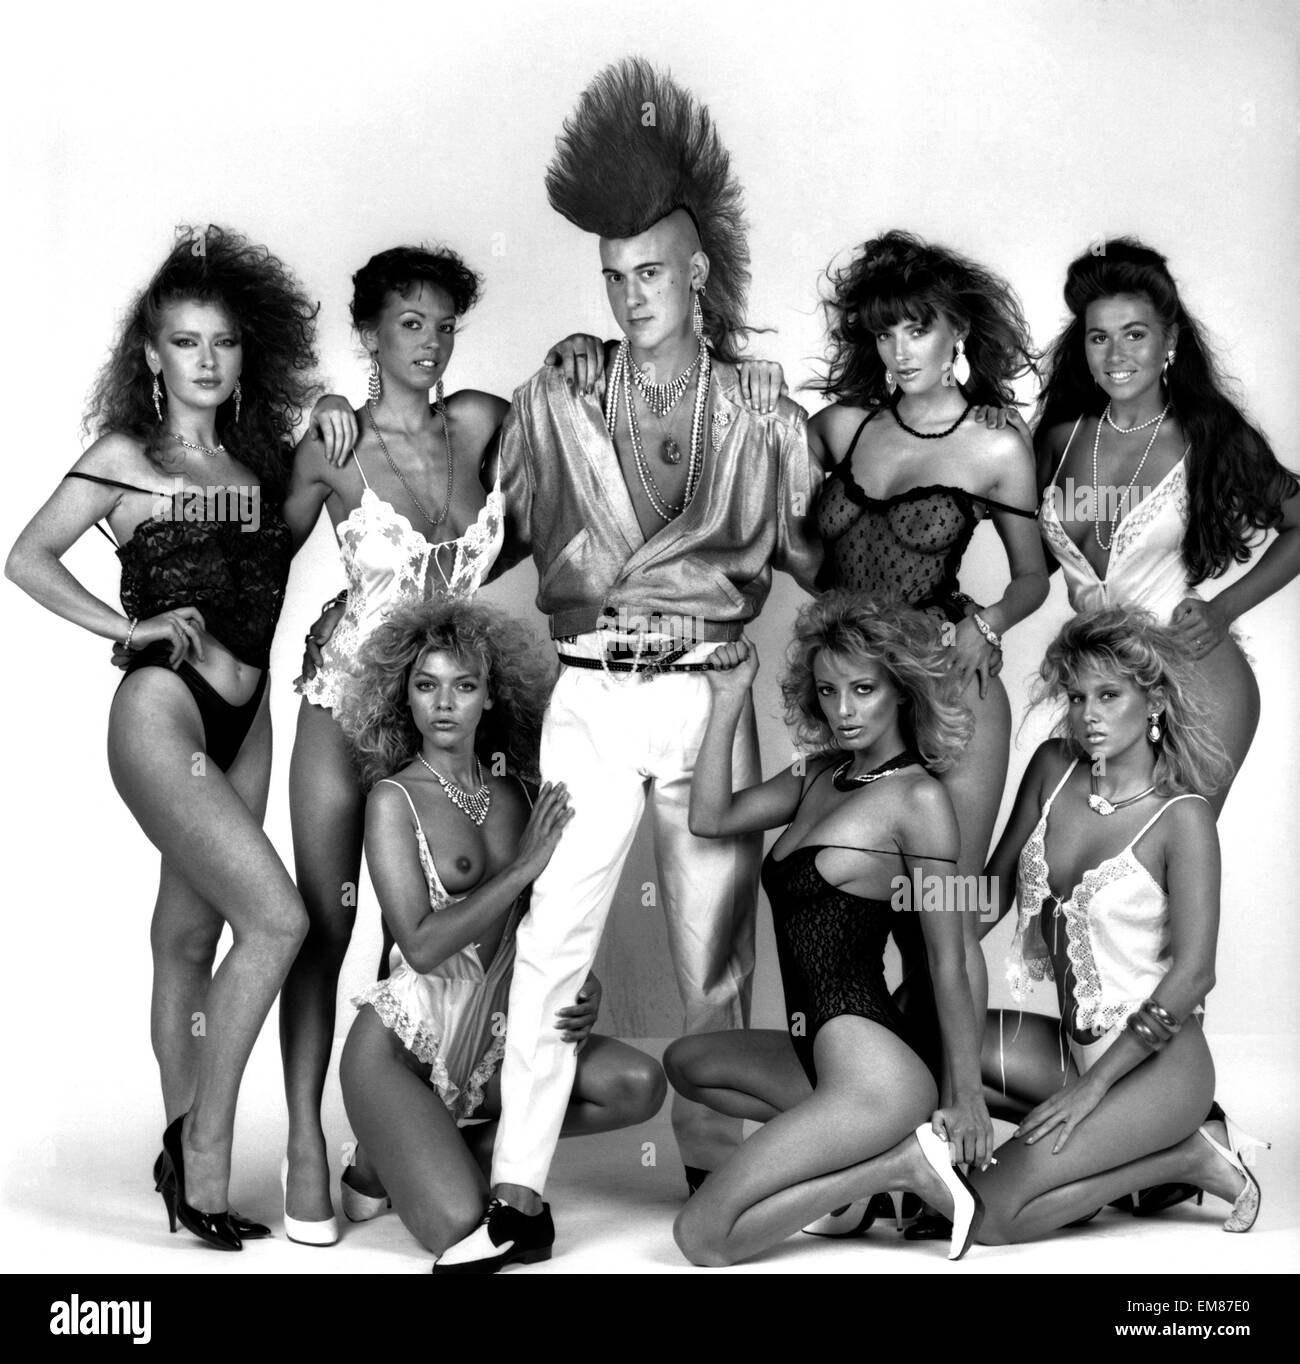 Punk pin-up Matt Belgrano has signed on with a women-only pin-up agency. July 1986 P020898 - Stock Image